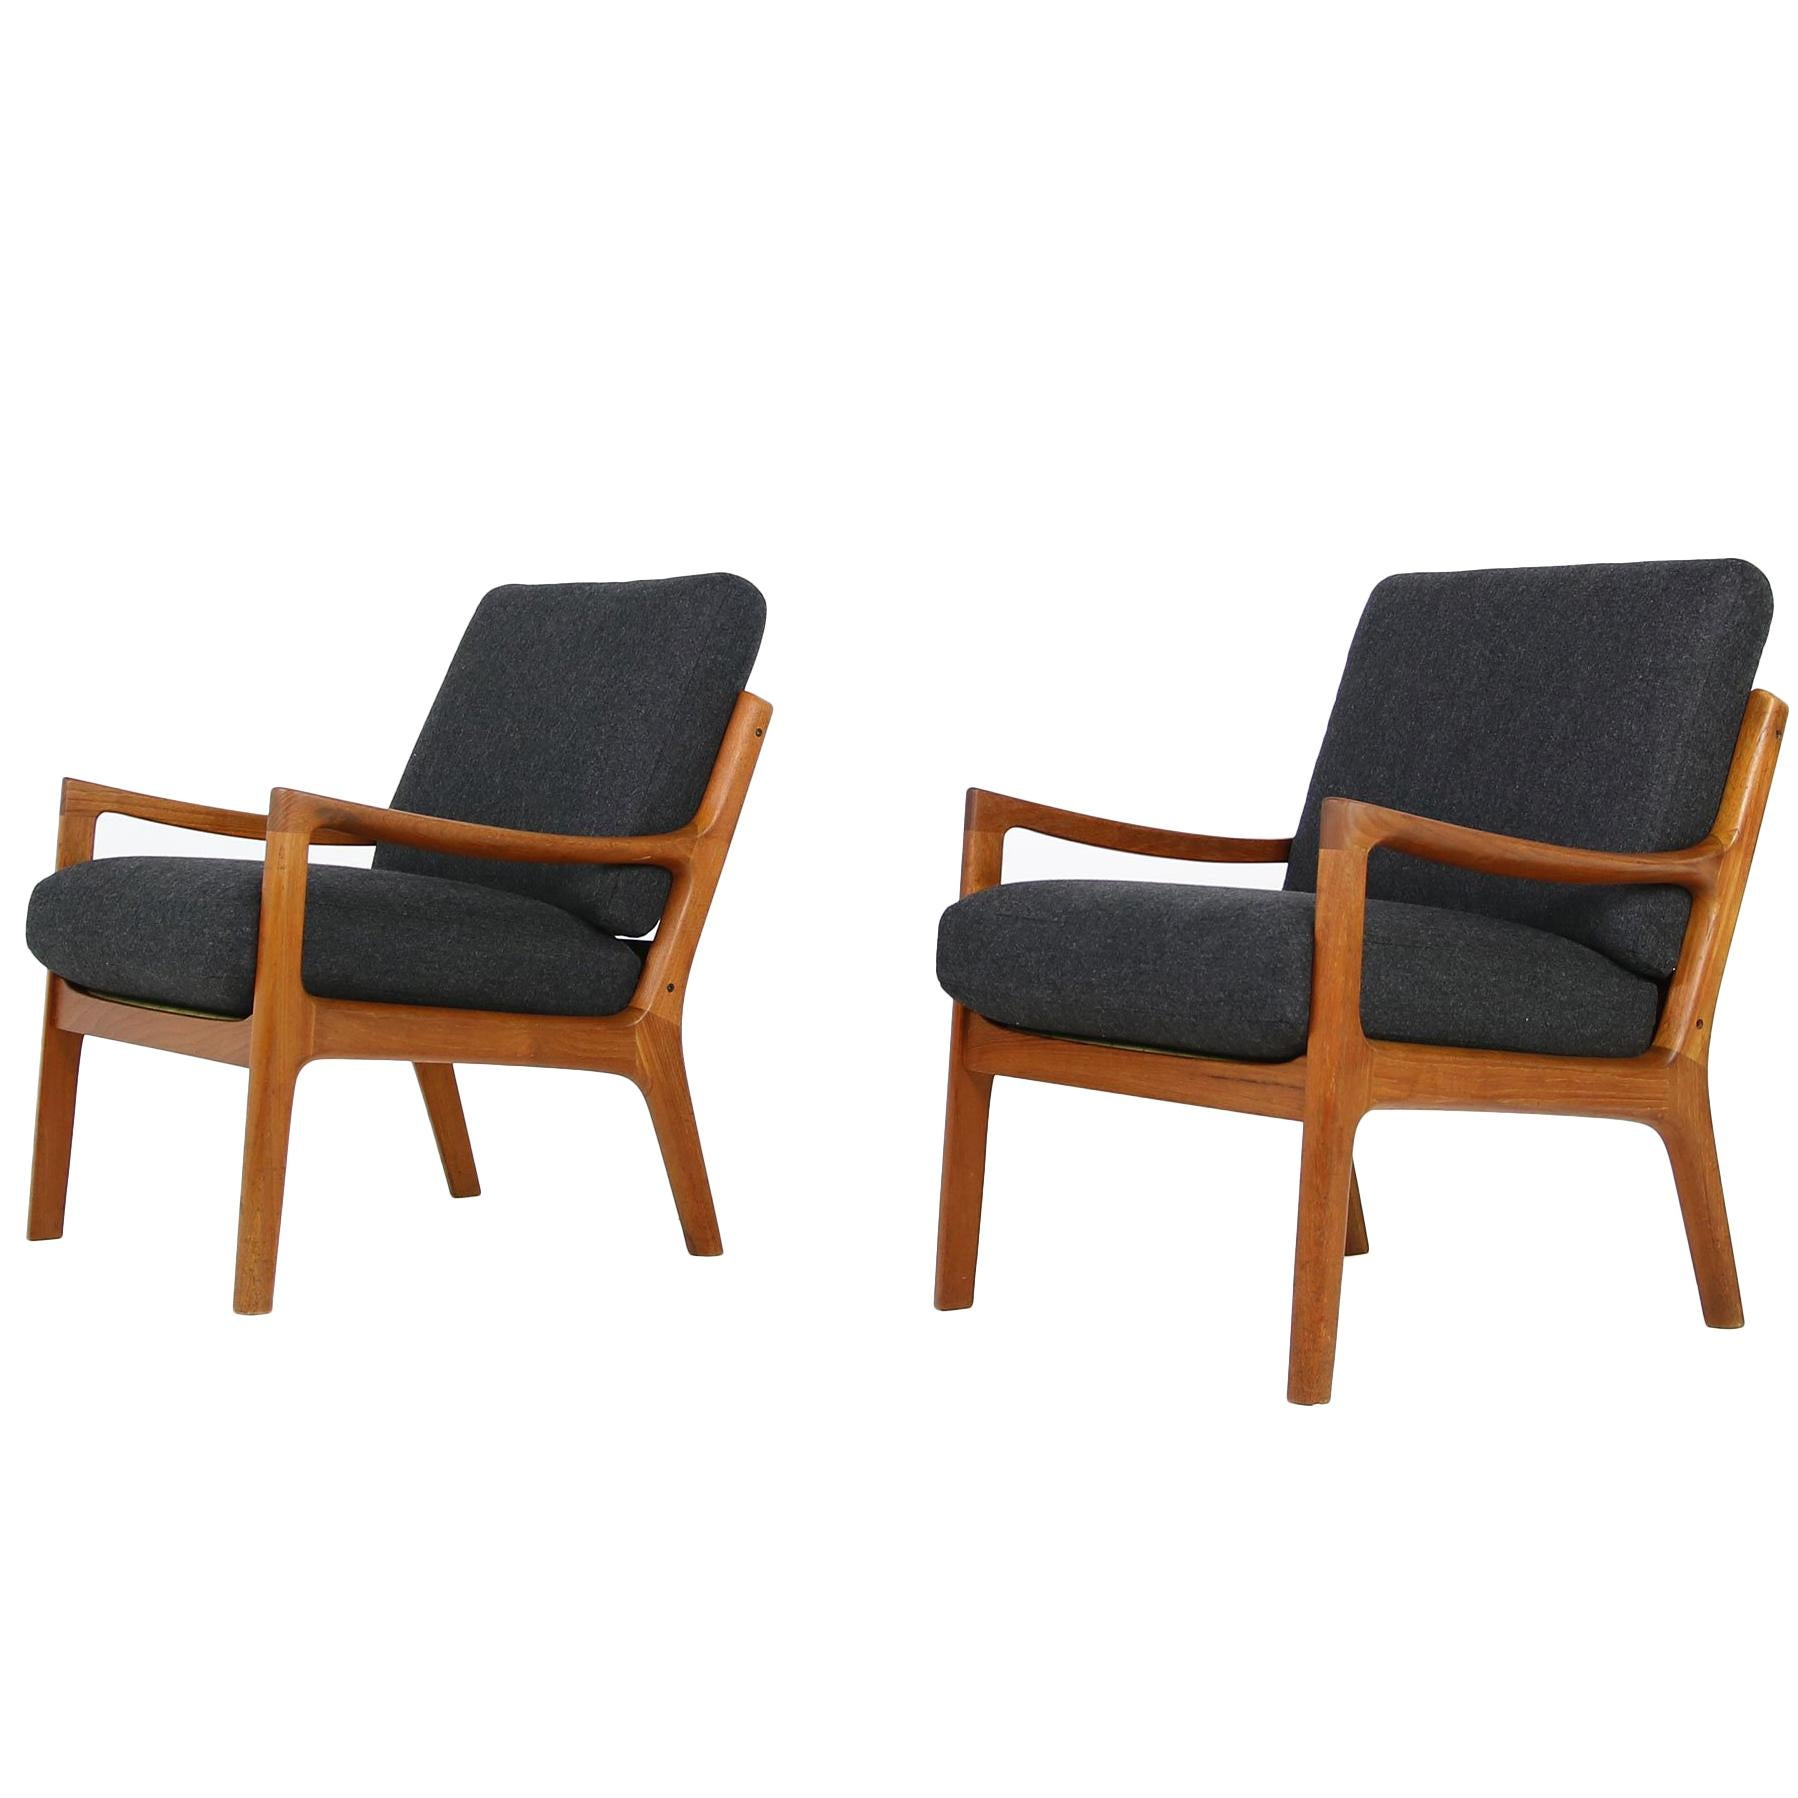 Ole Wanscher Sessel Pair Of Danish 1960s Teak Lounge Easy Chairs By Ole Wanscher Cado Denmark